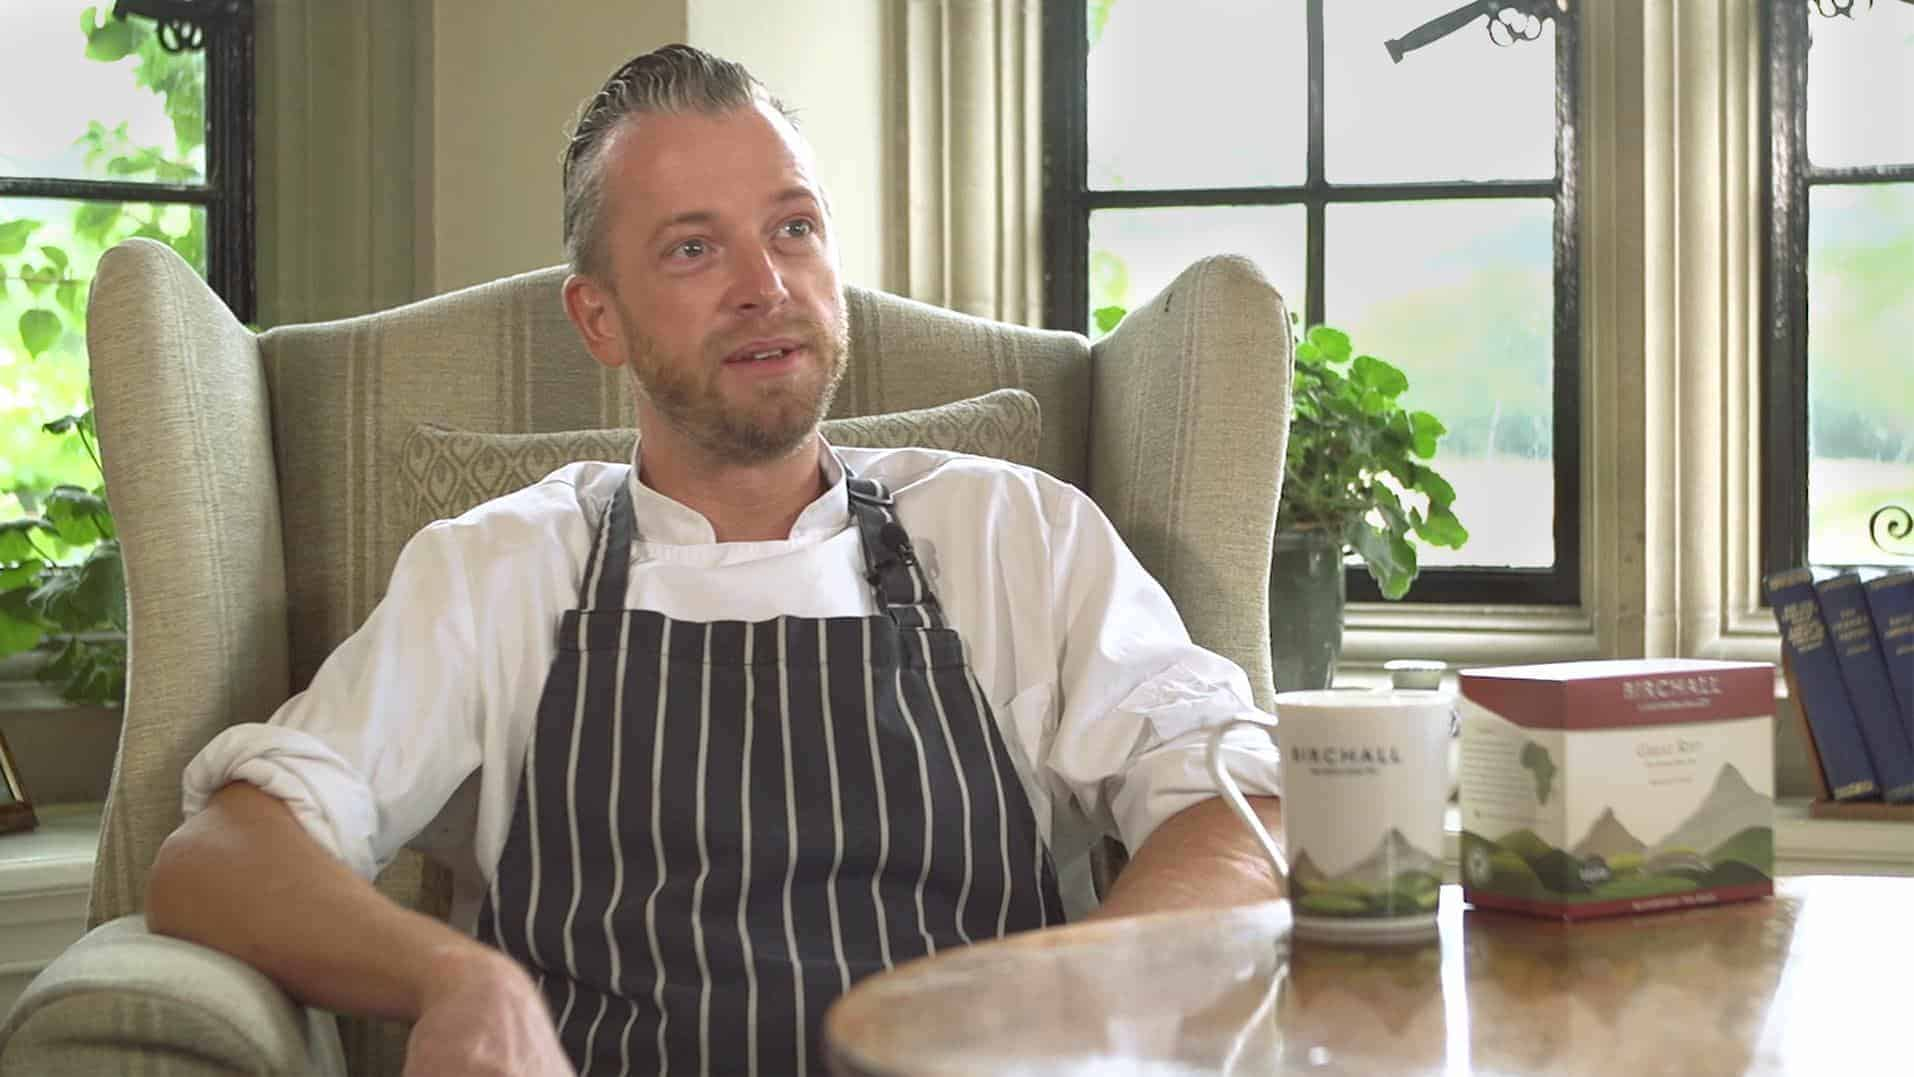 Head Chef Interview